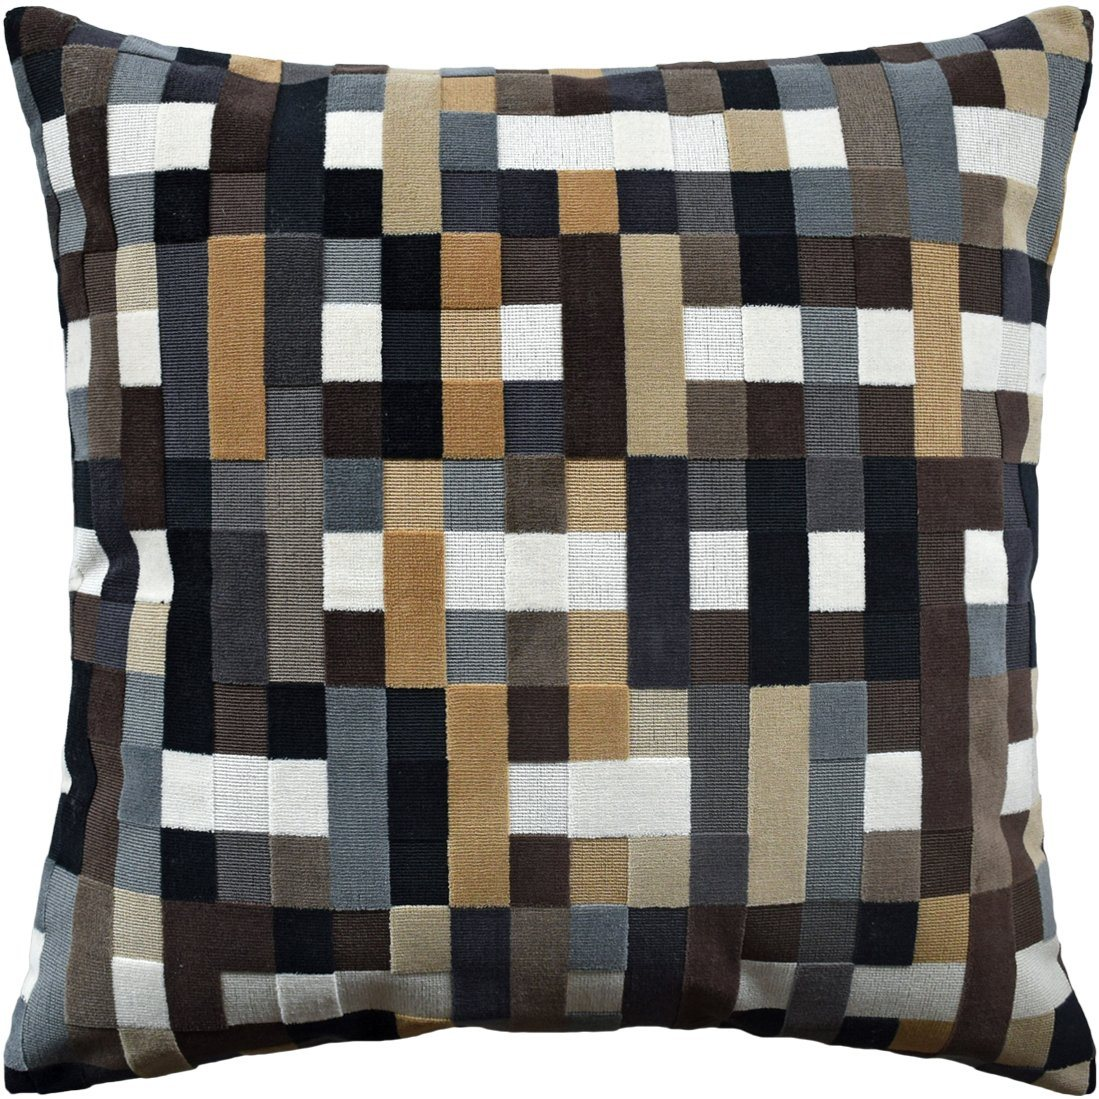 Abstract Moment Onyx Pillow by Ryan Studio